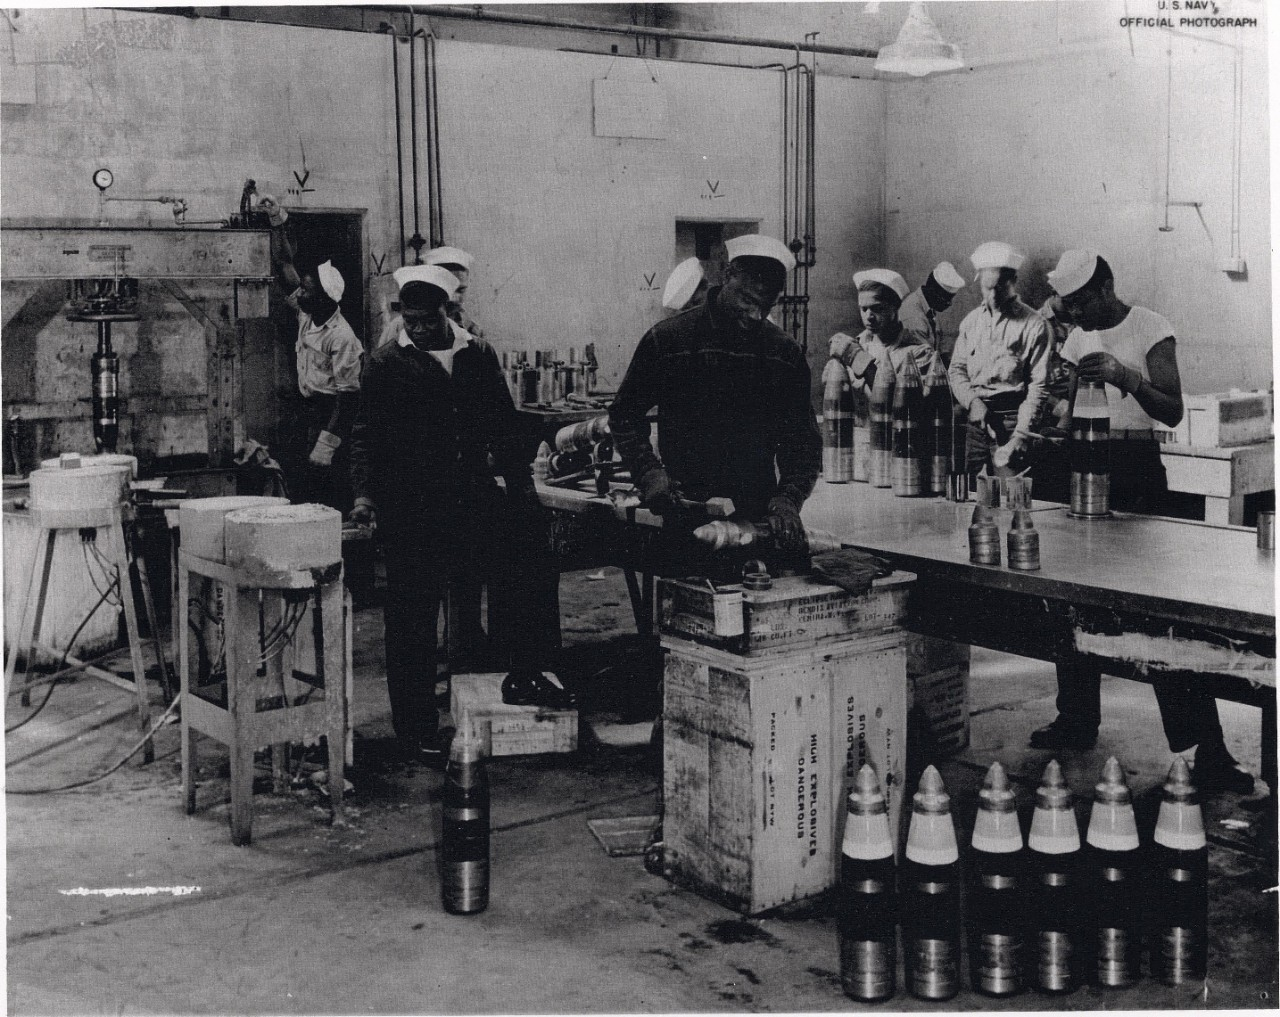 <p>African American sailors of an ordnance battalion preparing 5-inch shells for packing, Port Chicago Naval Magazine, circa 1943/44.</p>